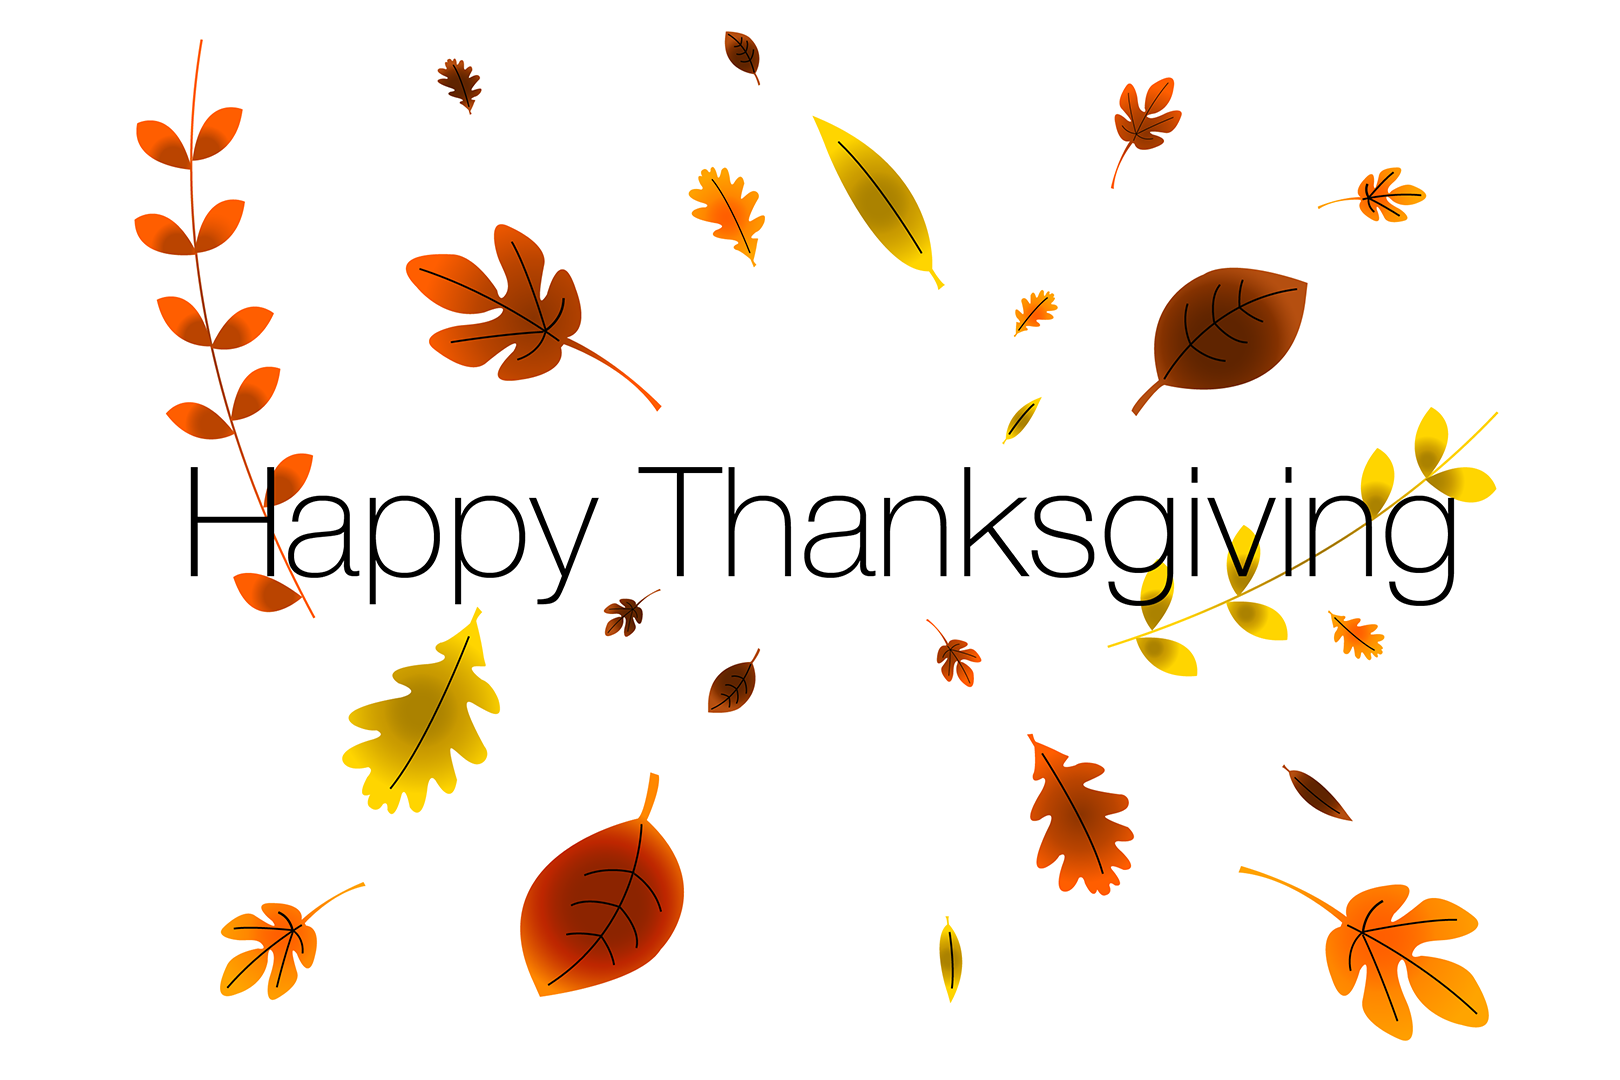 happy-thanksgiving-1620x1080.png